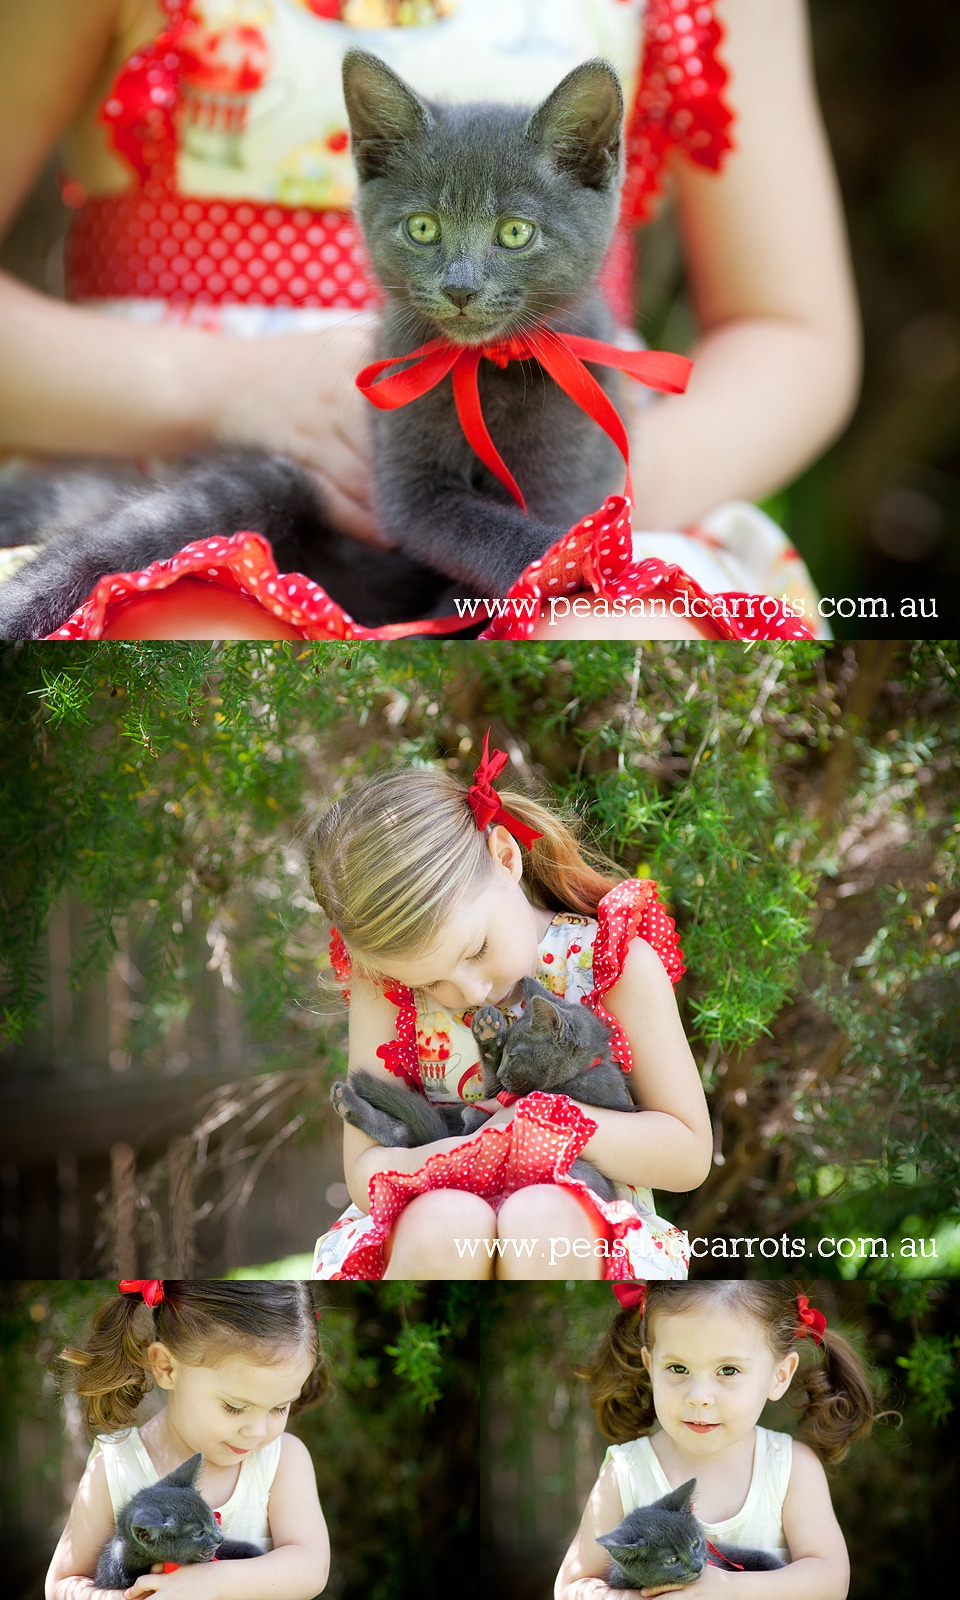 Brisbane Childrens Portrait Photography, Abby and Emily with their new baby kitten named Mr Pink in the backyard at their home in Wavell Heights.  Natural images of children and animals.  Brisbane Child Photographer Nikki Joyner, capturing whimsical and u